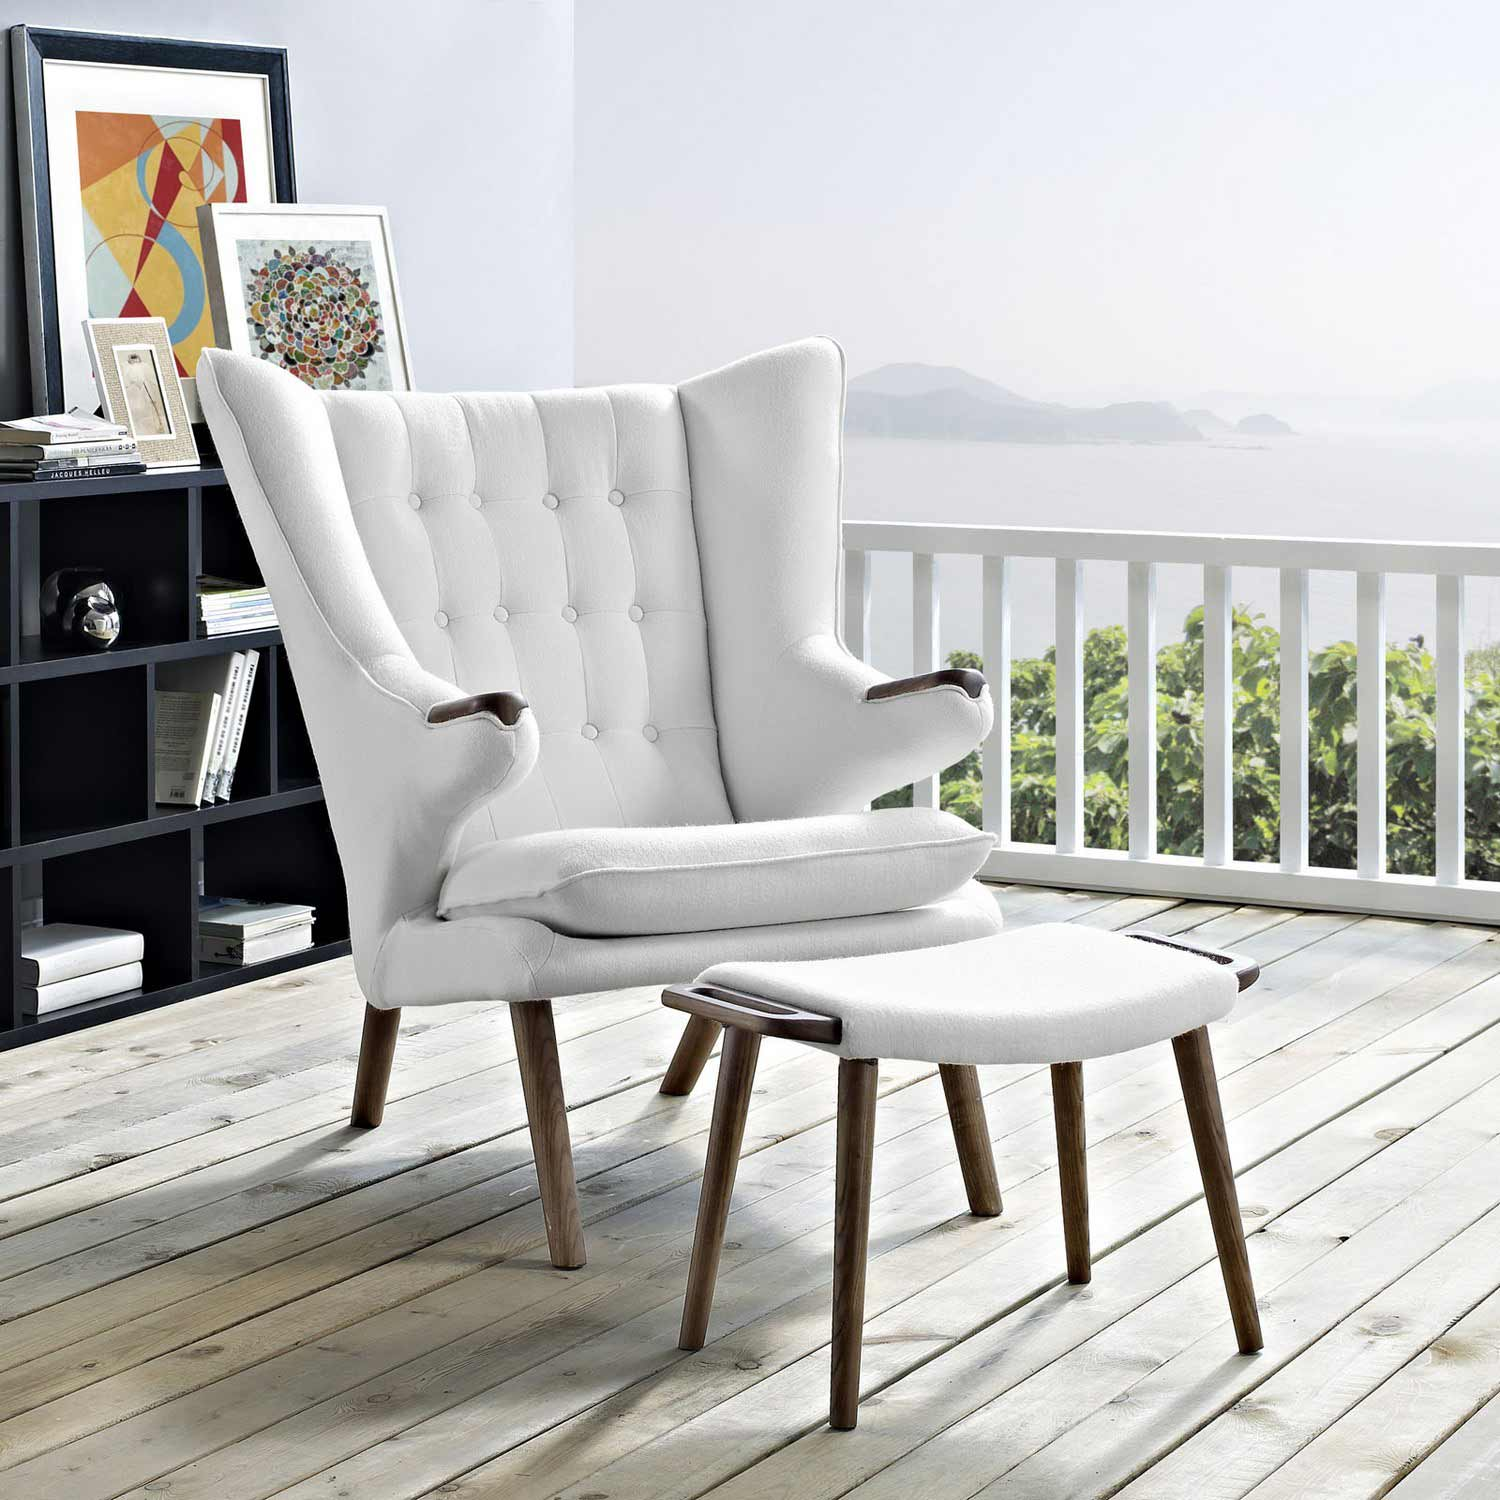 Modway Bear Lounge Chair and Ottoman - Walnut White